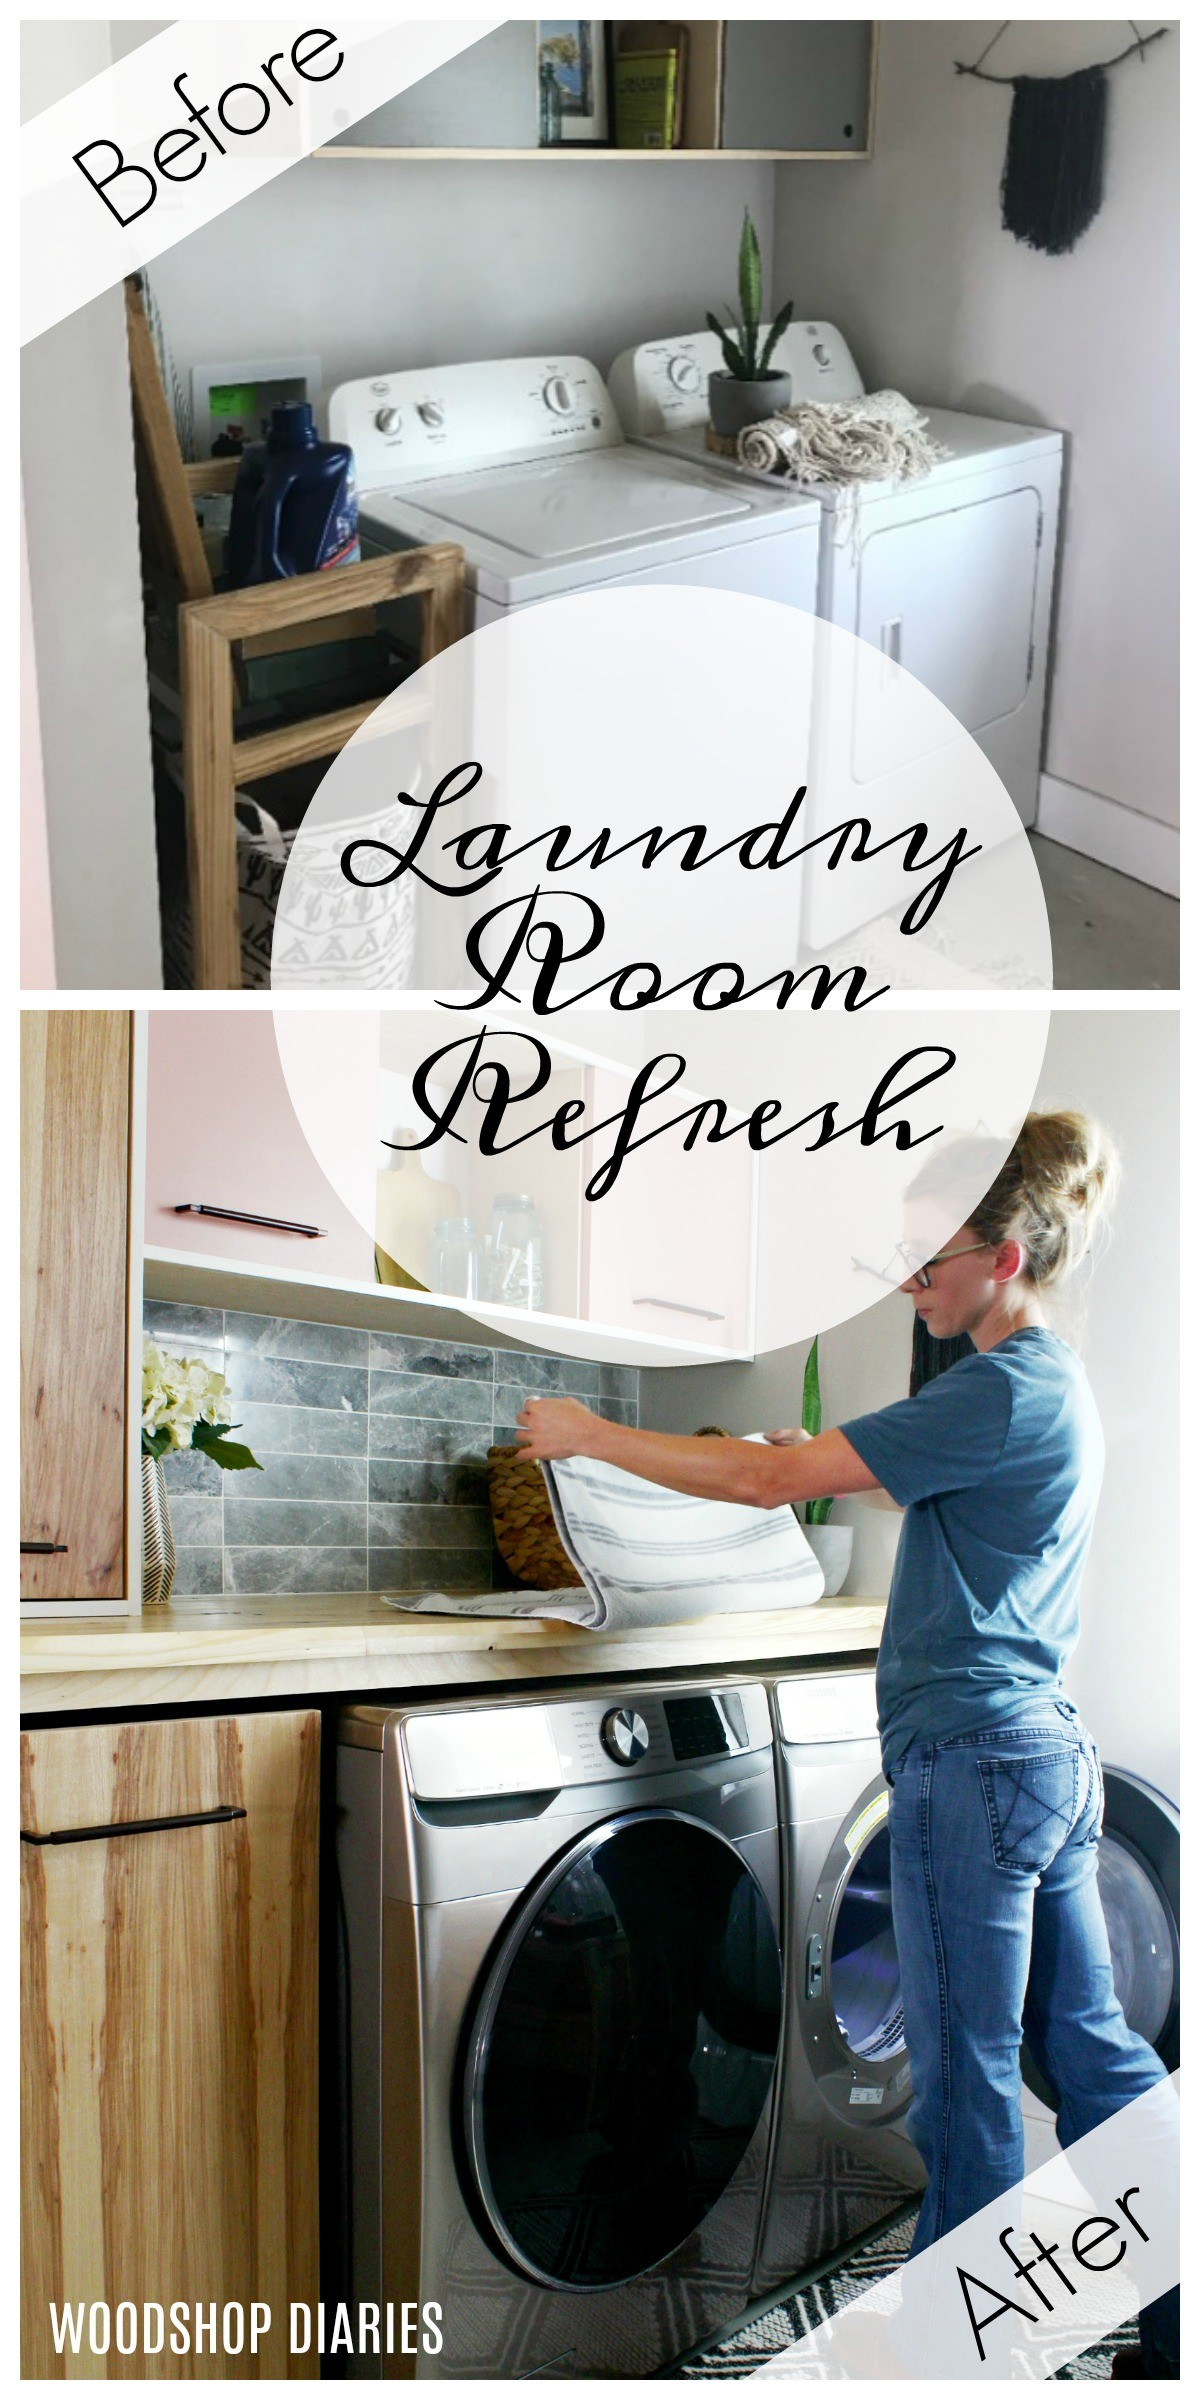 Laundry Room Refresh Transformation Before and After